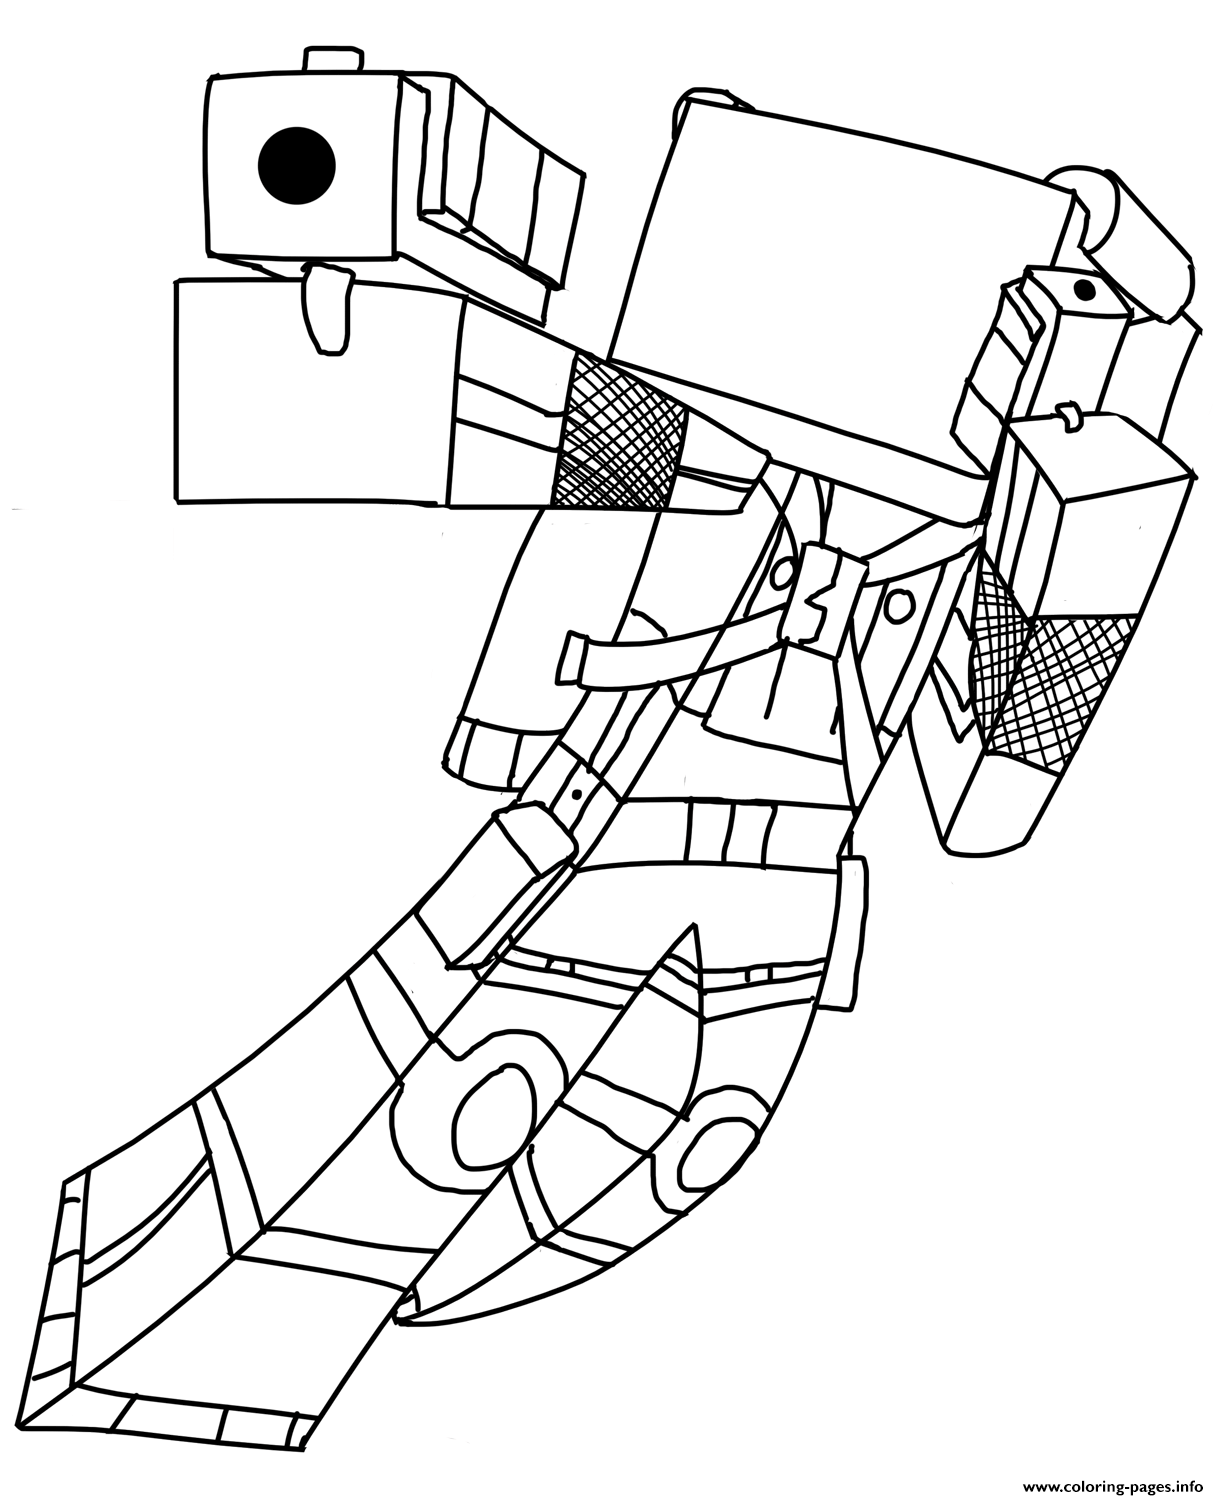 images of minecraft coloring pages minecraft coloring pages the coloring page pages images minecraft coloring of